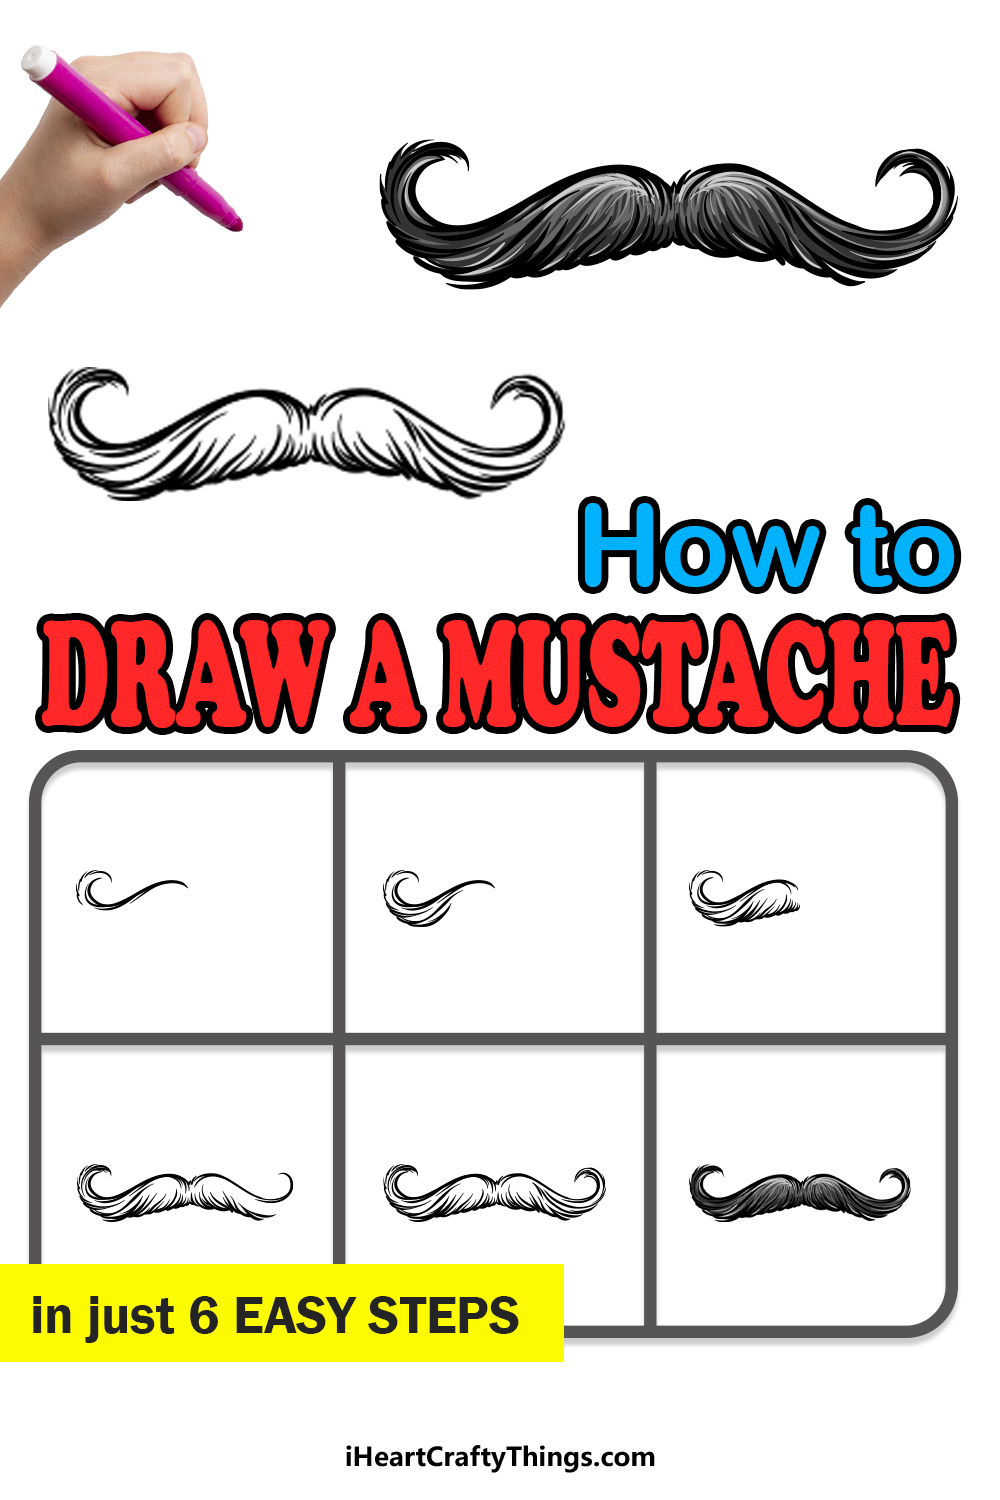 how to draw a mustache in 6 easy steps